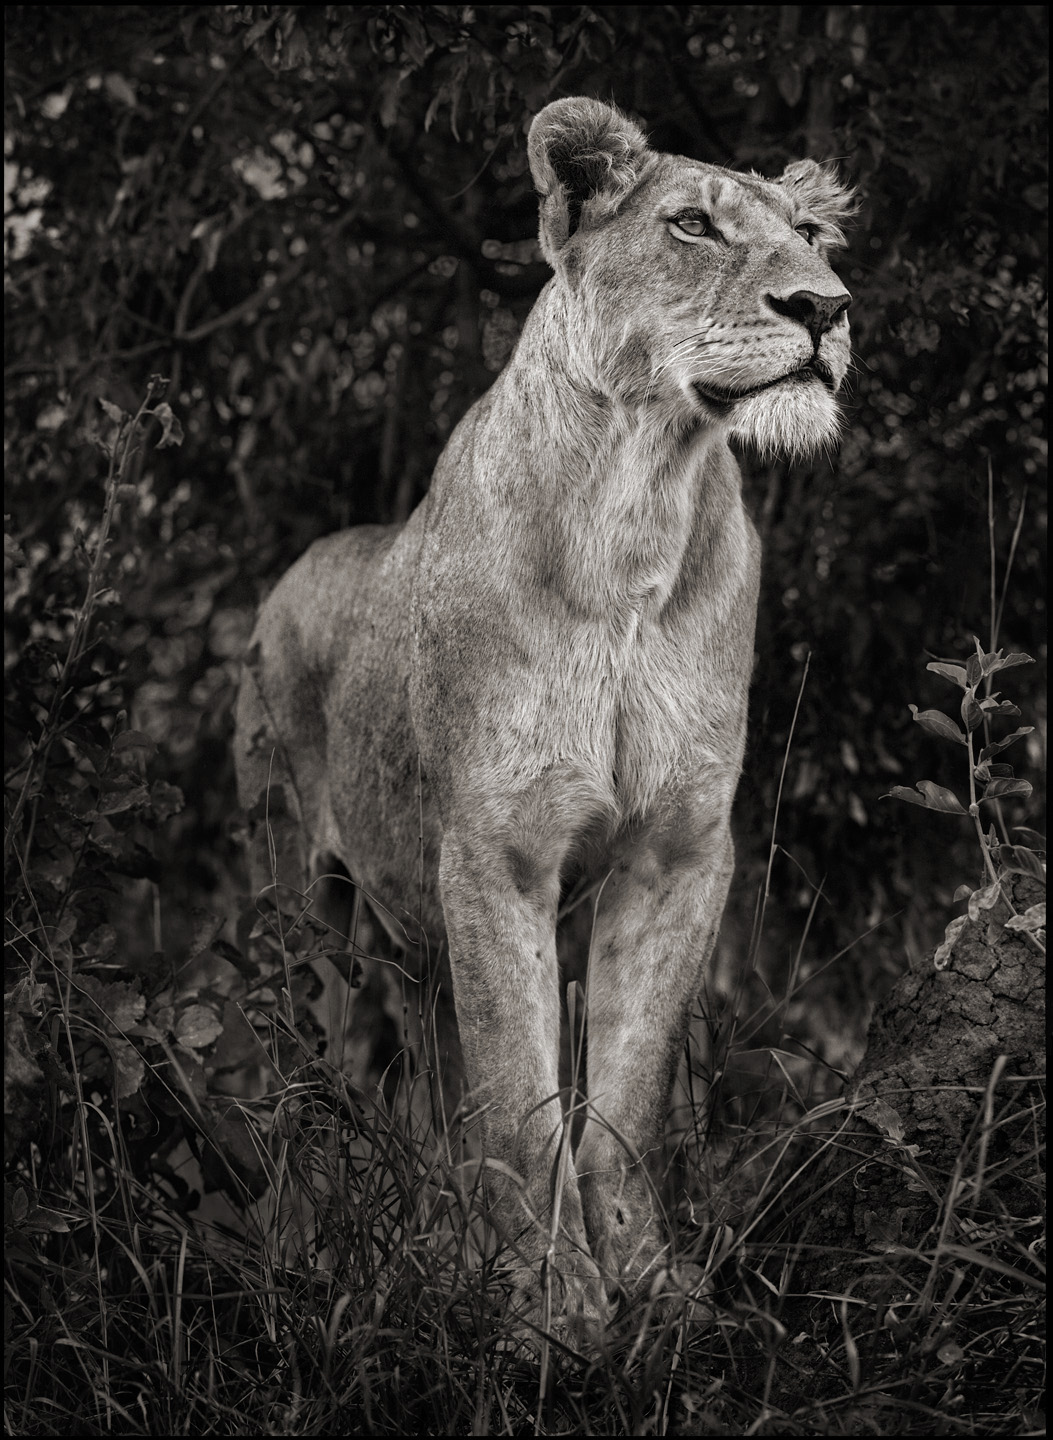 Lioness Against Dark Foliage